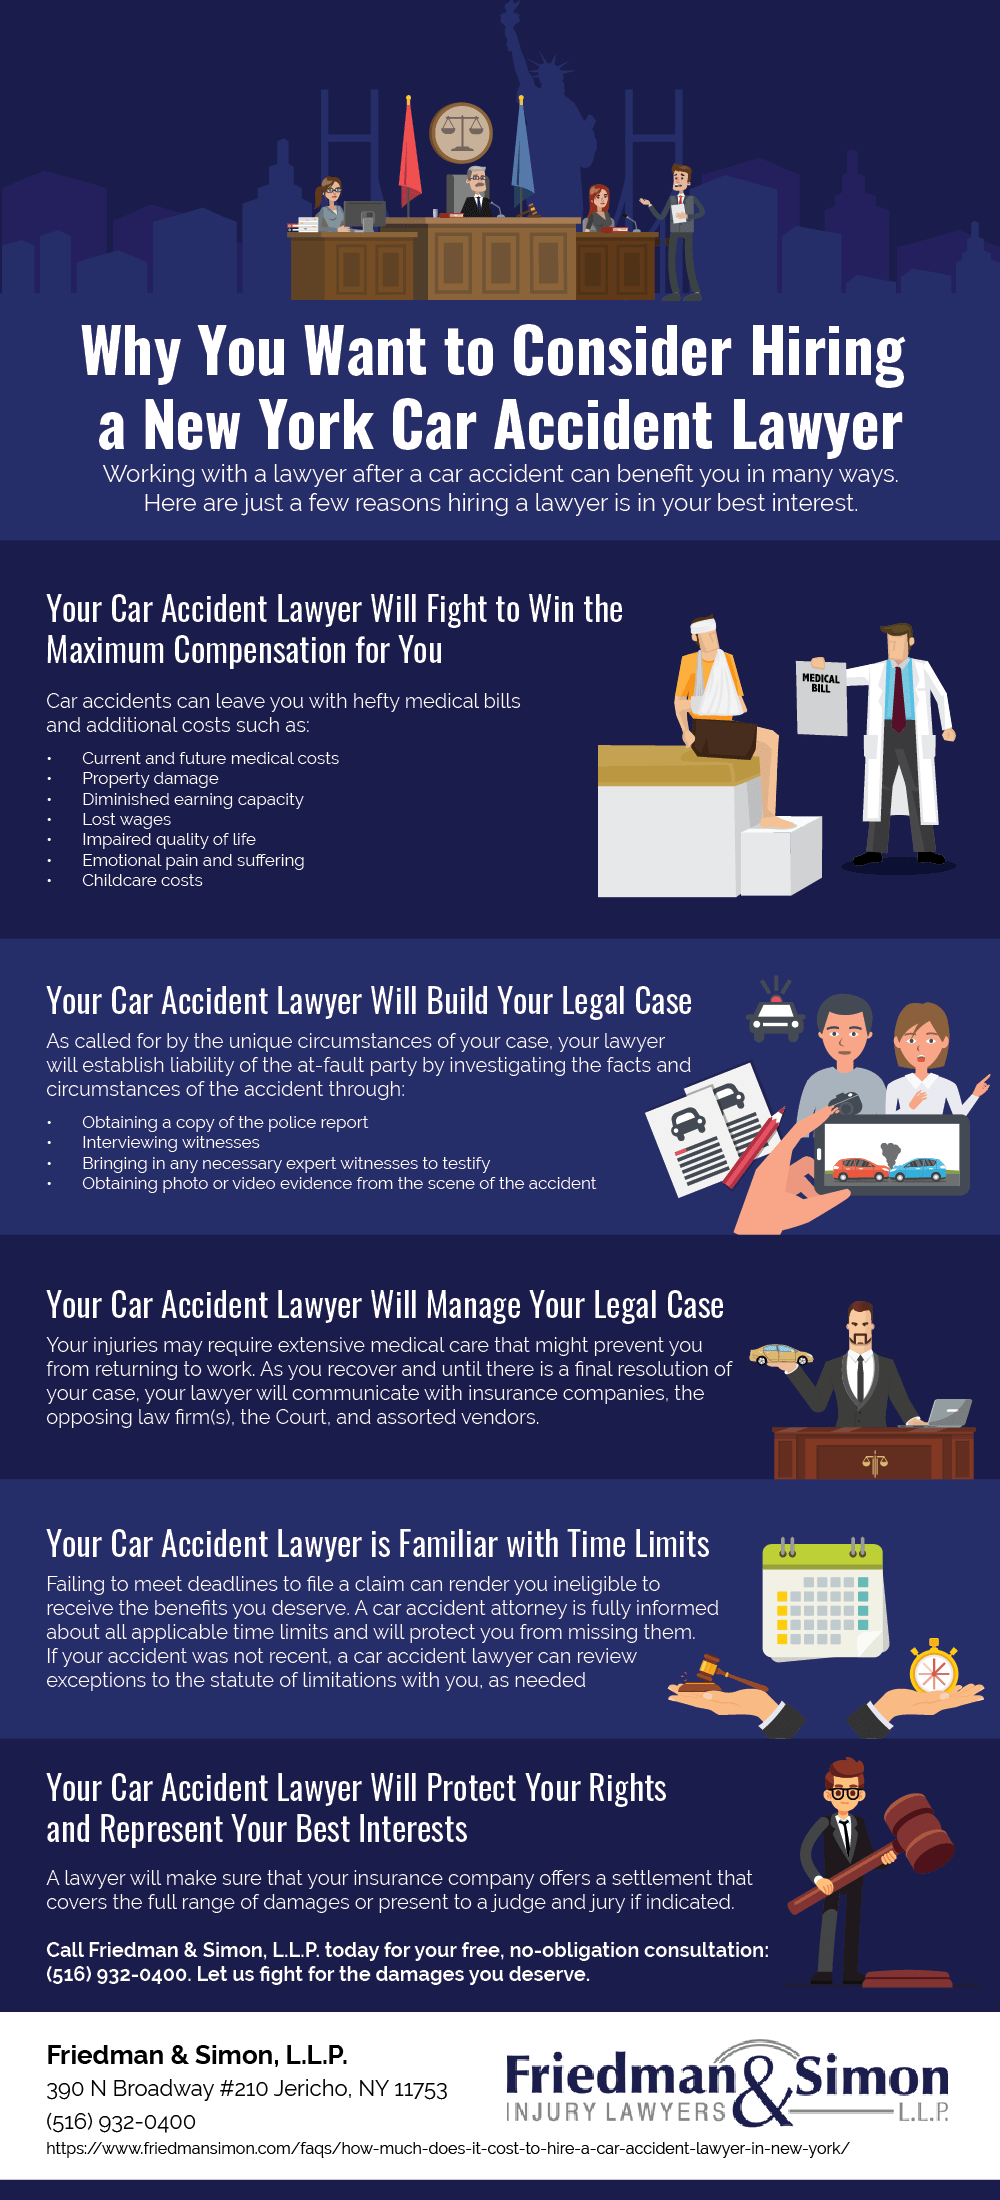 How Much Does It Cost To Hire A Car Accident Lawyer In New York?